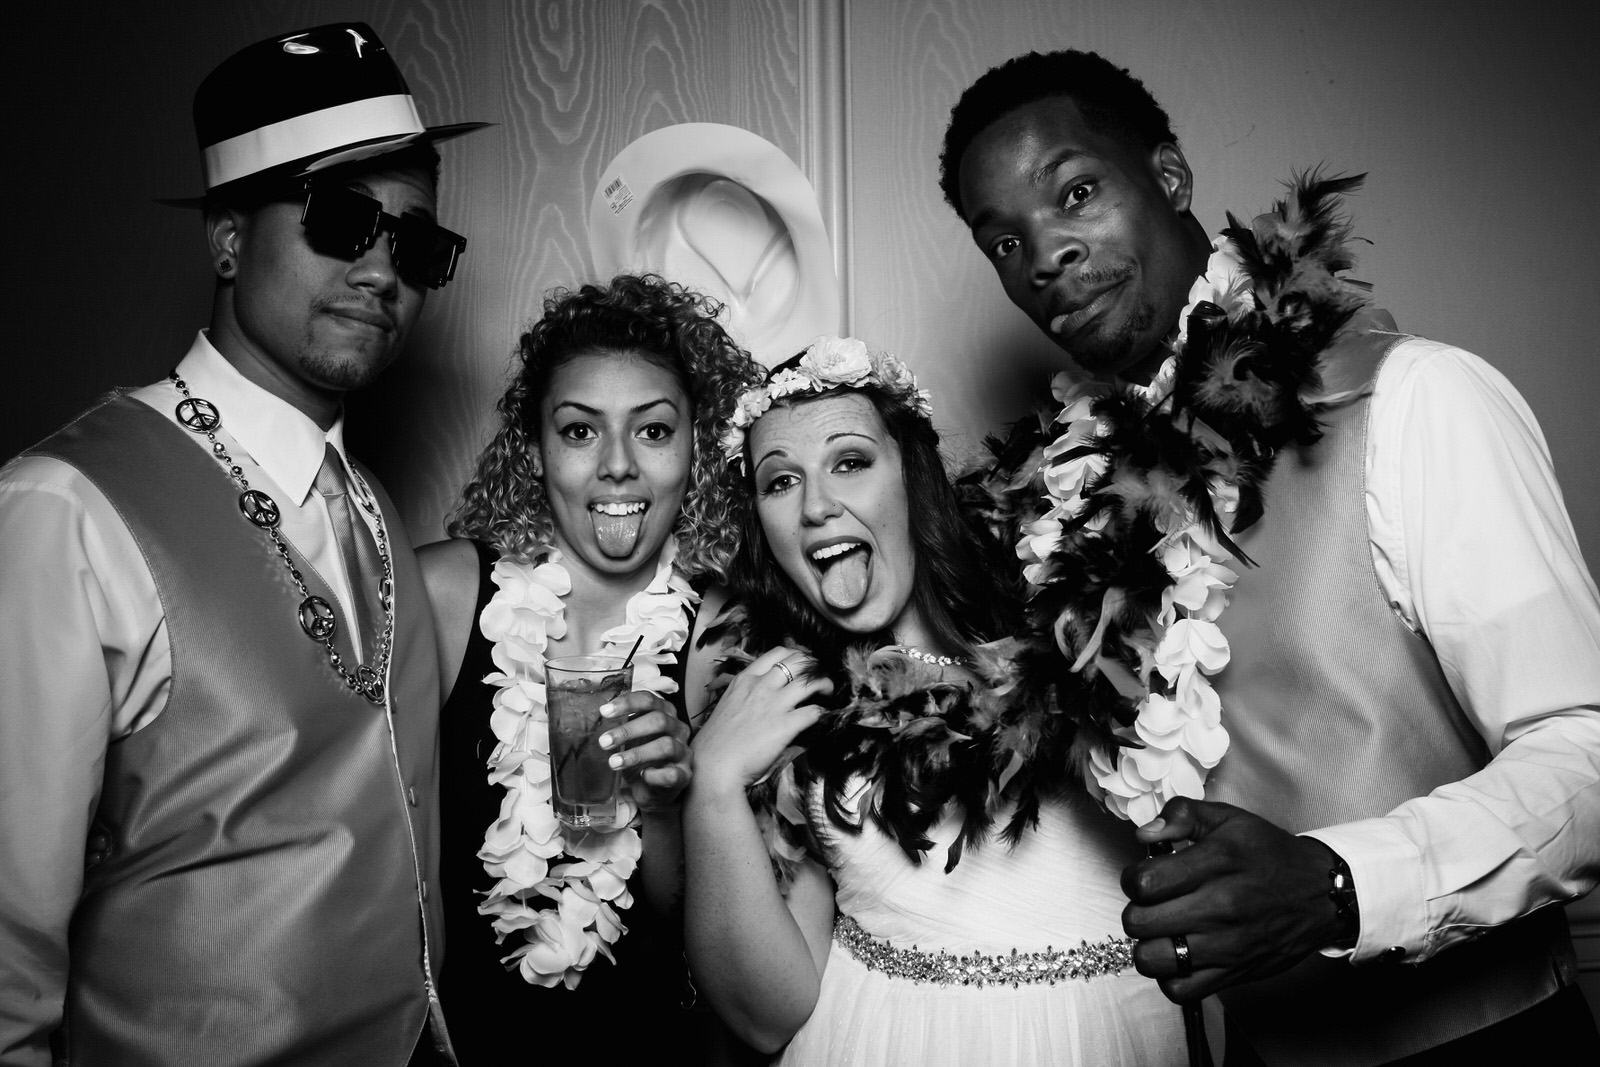 Ashley-Tyrone-Wedding-Photo-Booth-Presidential_Norristown-Wedding-12.jpg